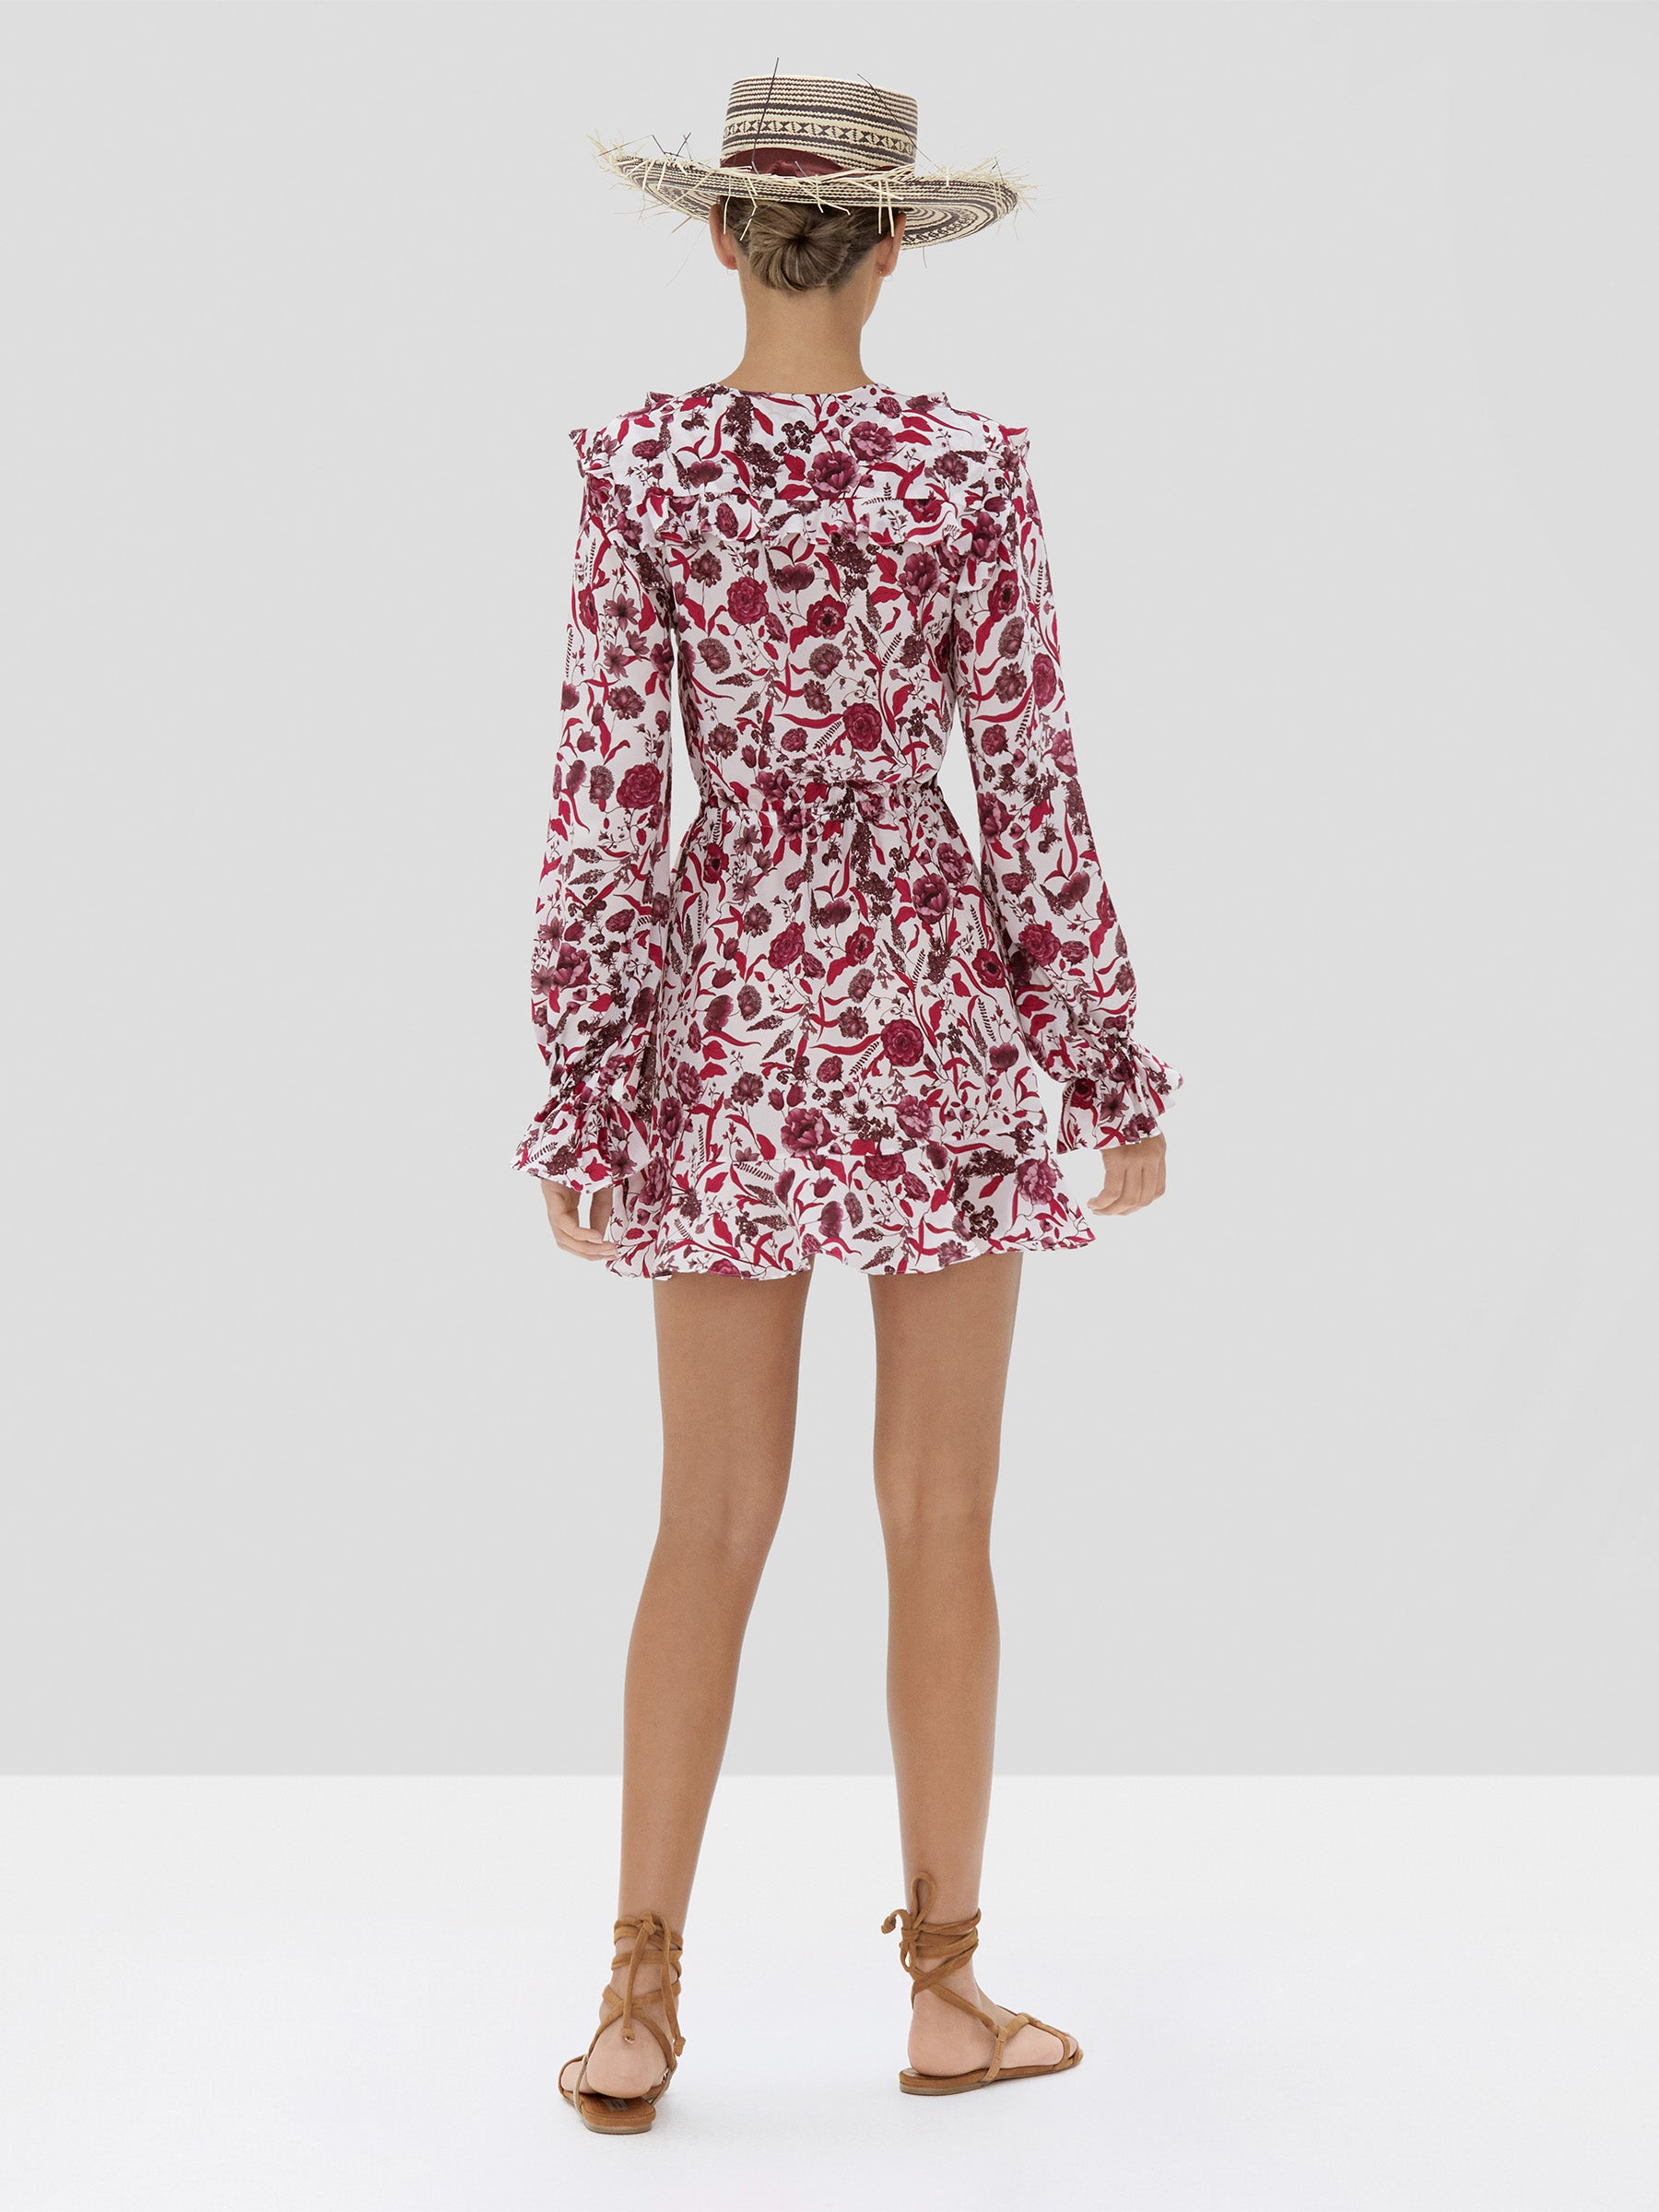 Alexis Kosma Dress in Berry Floral from Spring Summer 2020 - Rear View